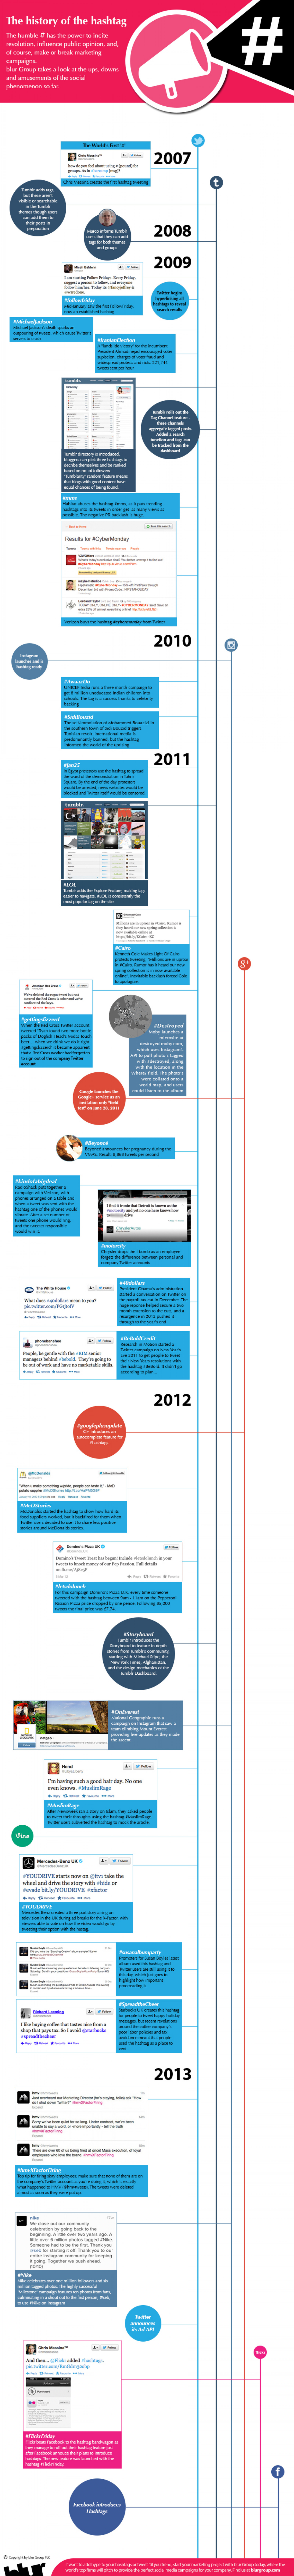 The History of the Hashtag Infographic